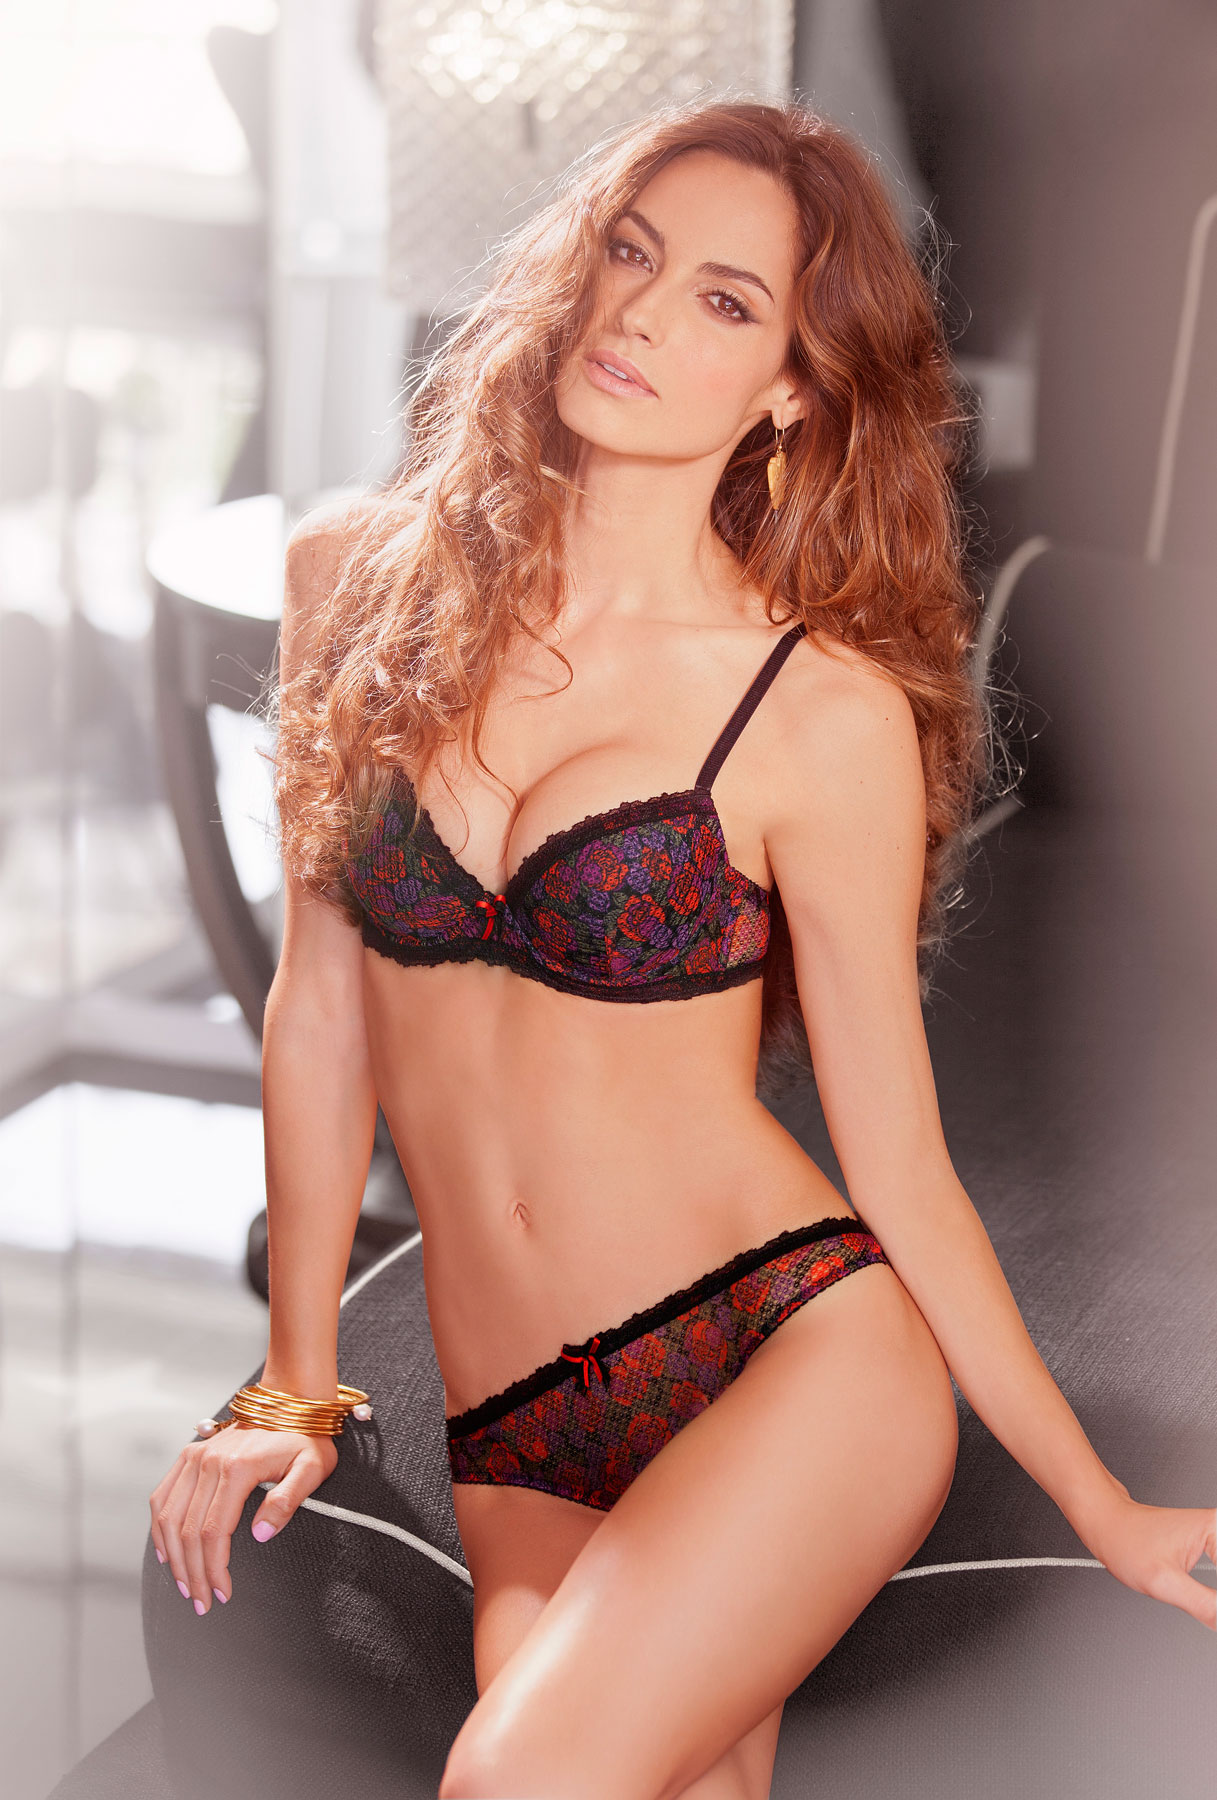 Ariadne-Artiles-Yamamay-lingerie-1